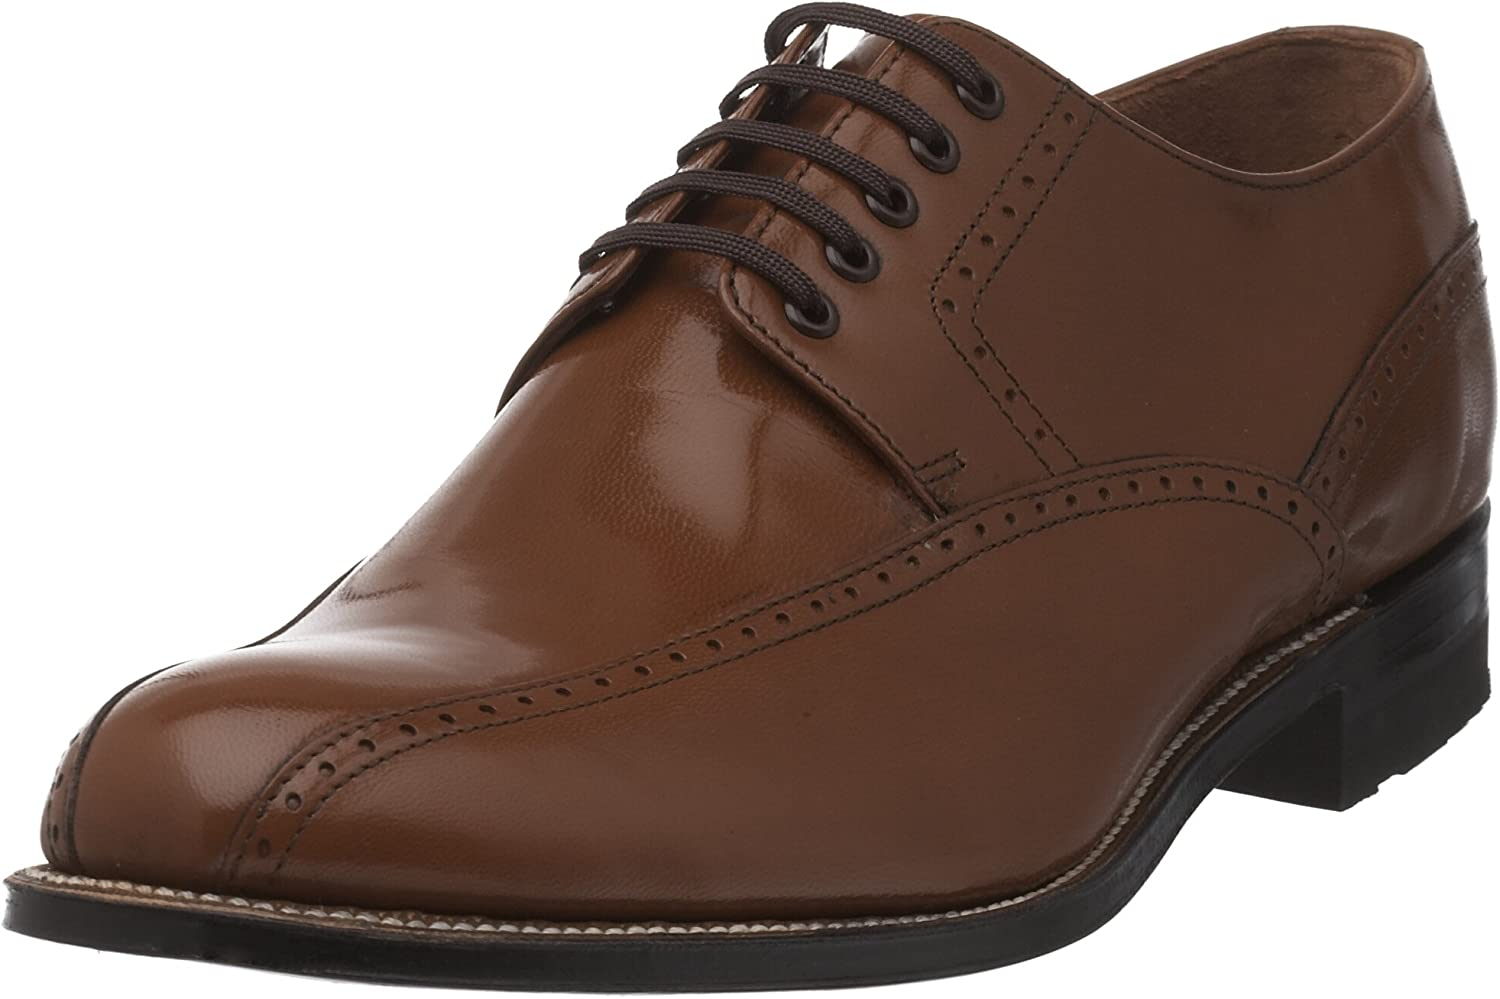 Stacy Adams Men's Madison Bicycle Oxford